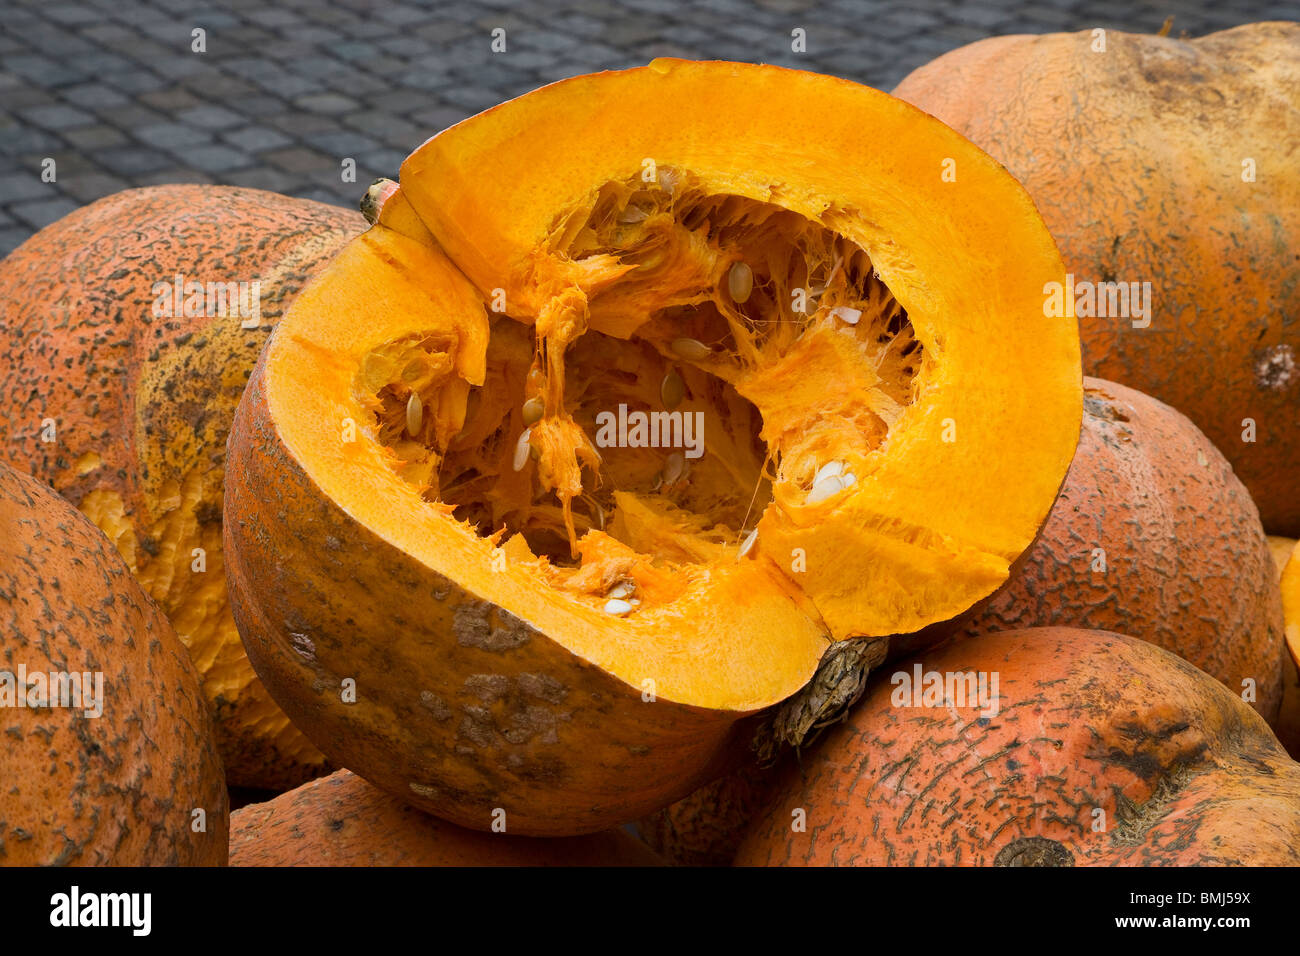 pumpkin is the fruit of the species Cucurbita pepo or Cucurbita mixta. It can refer to a specific variety of the - Stock Image